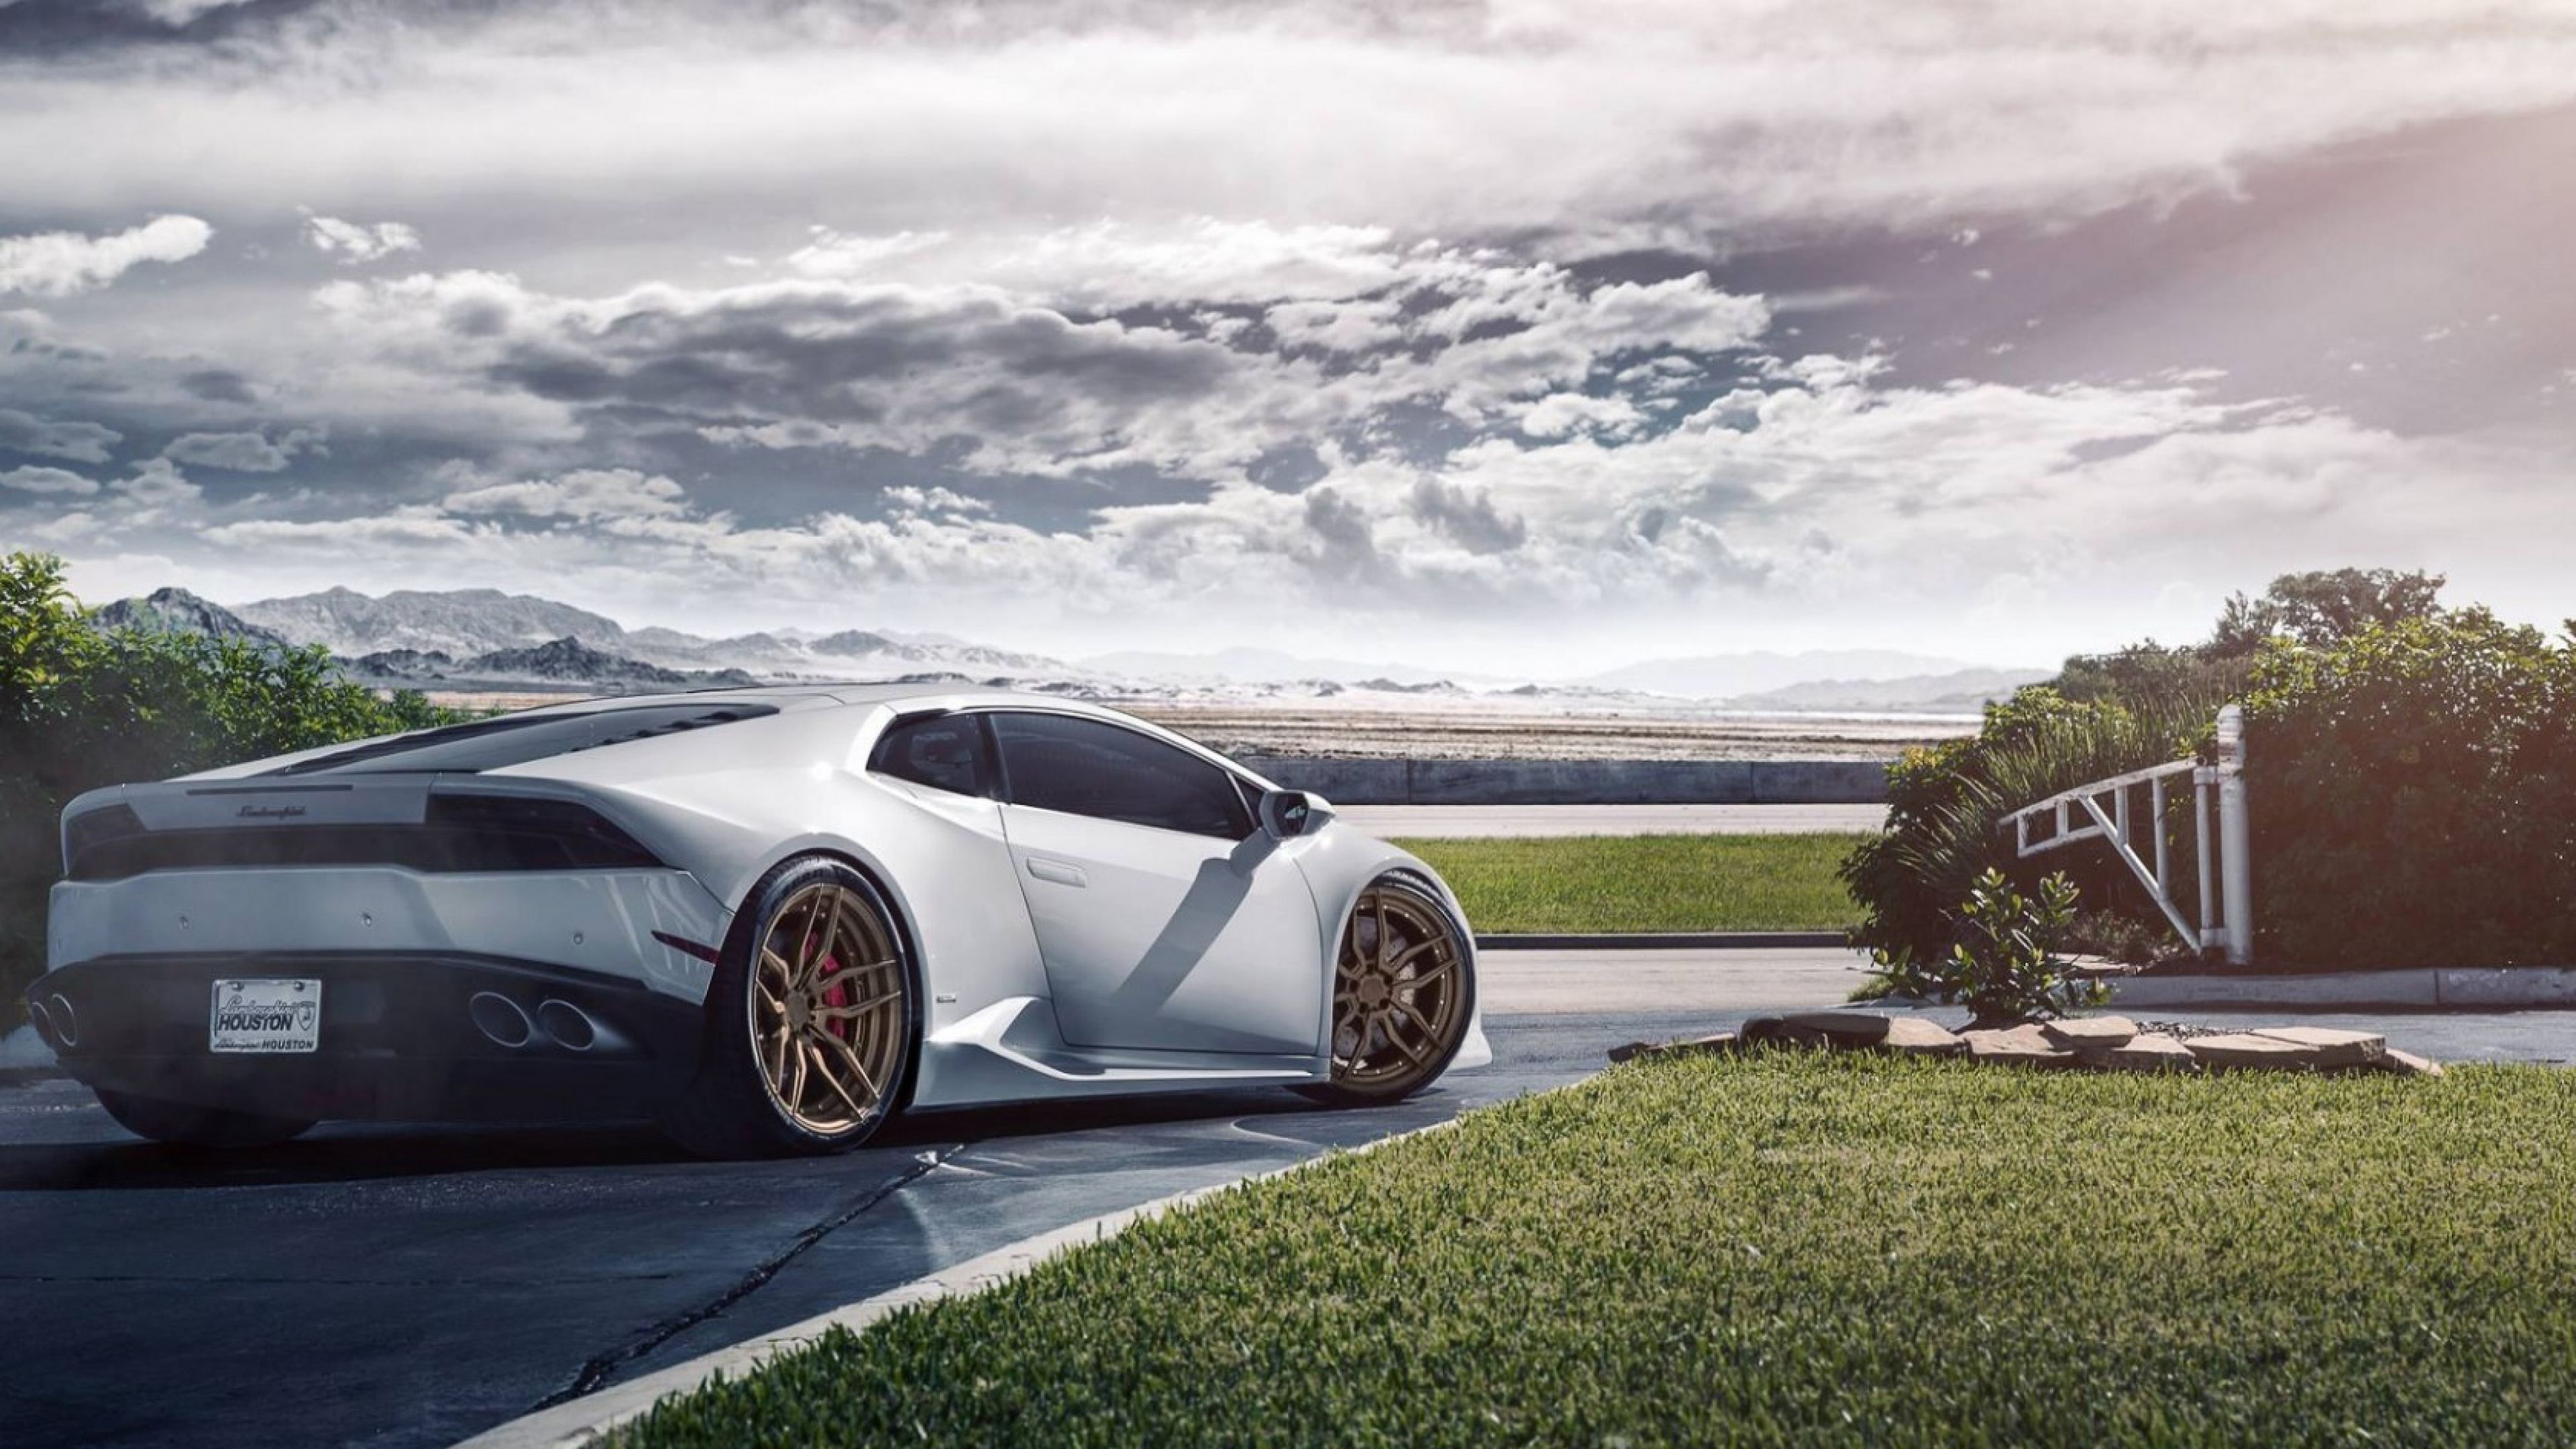 Lamborghini Huracan Wallpaper 1080p Vehicles Wallpapers Hd